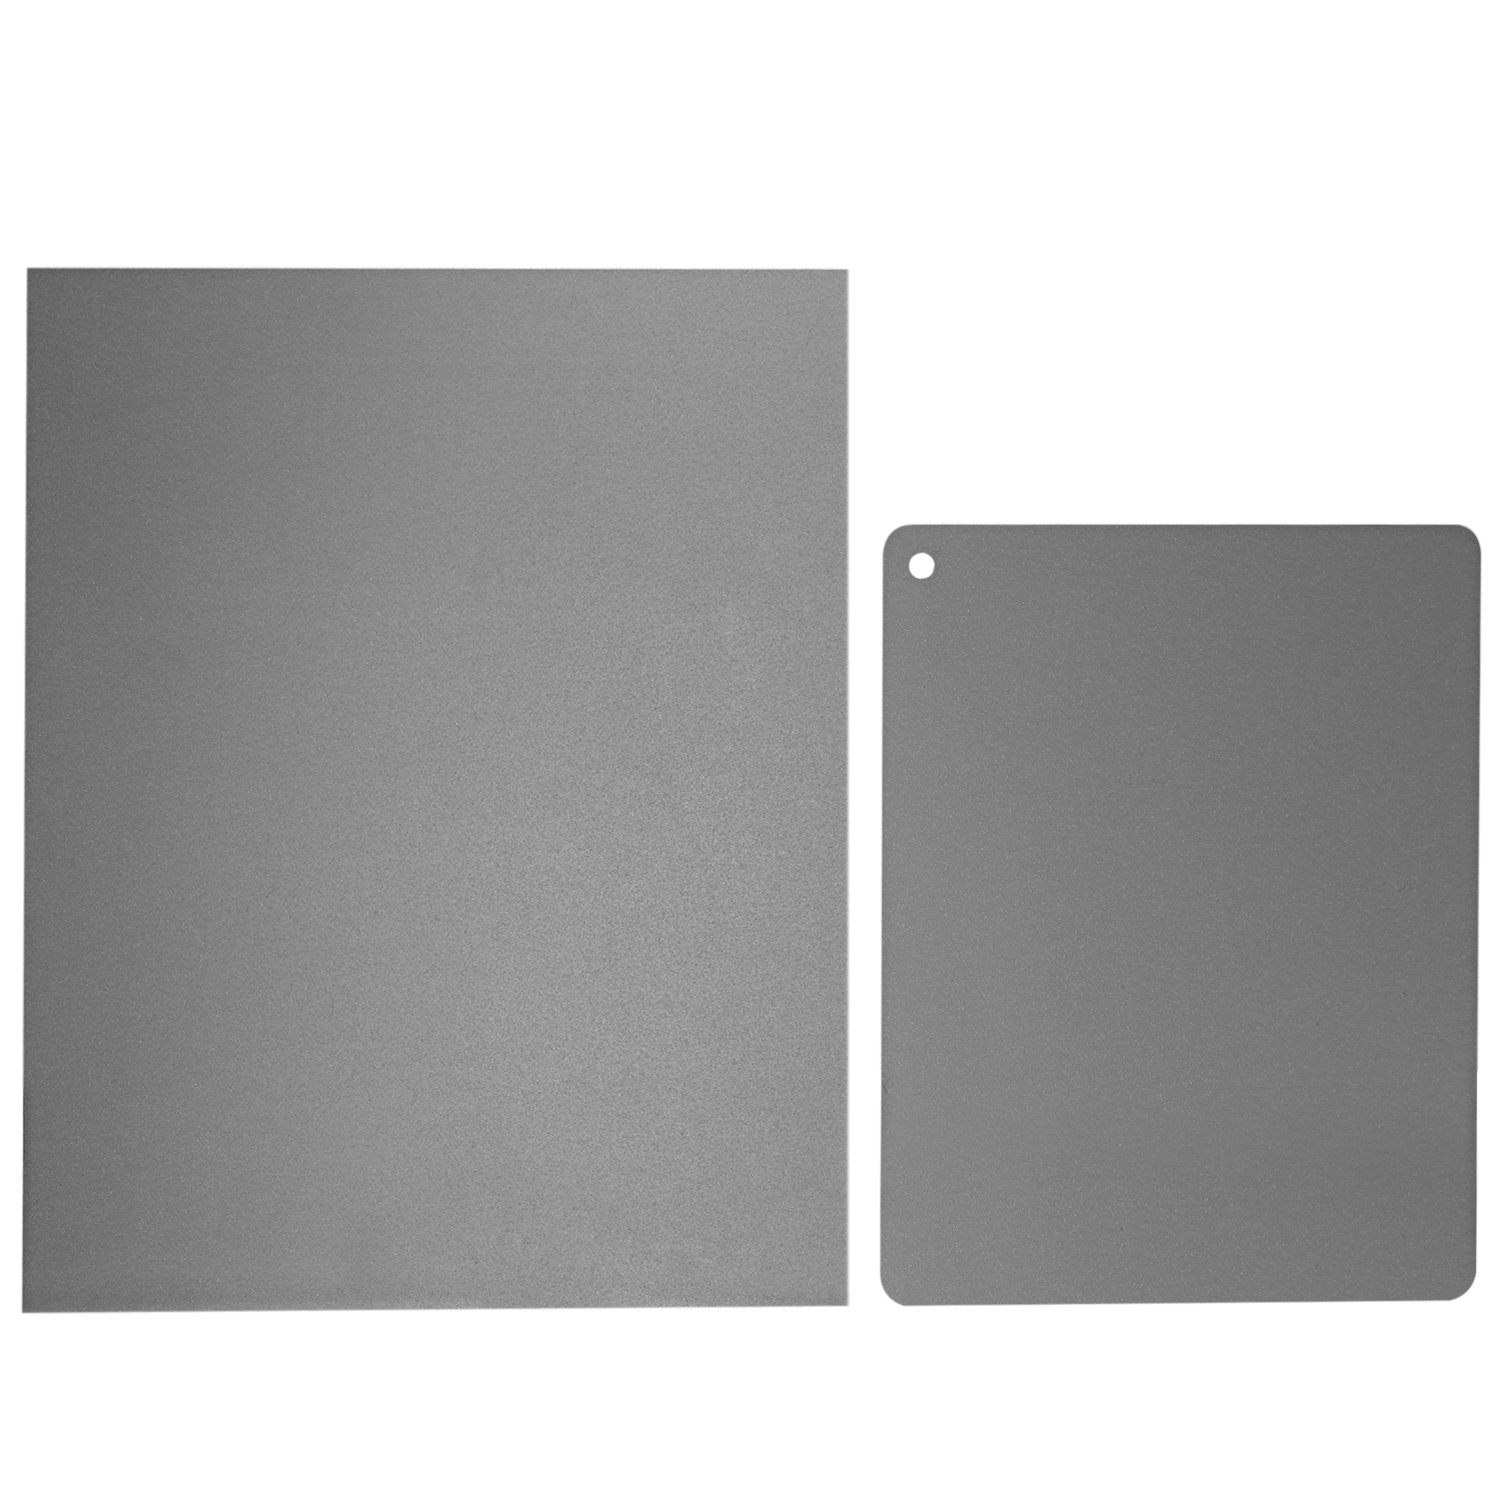 Neewer 2 Pieces Grey Card Set, Custom White Balance 18 Percent Gray Reference Reflector and Exposure Control Photographic Cardboard Kit (8x10 inches, 4x5 inches) for DSLR, Video, Film and Photography